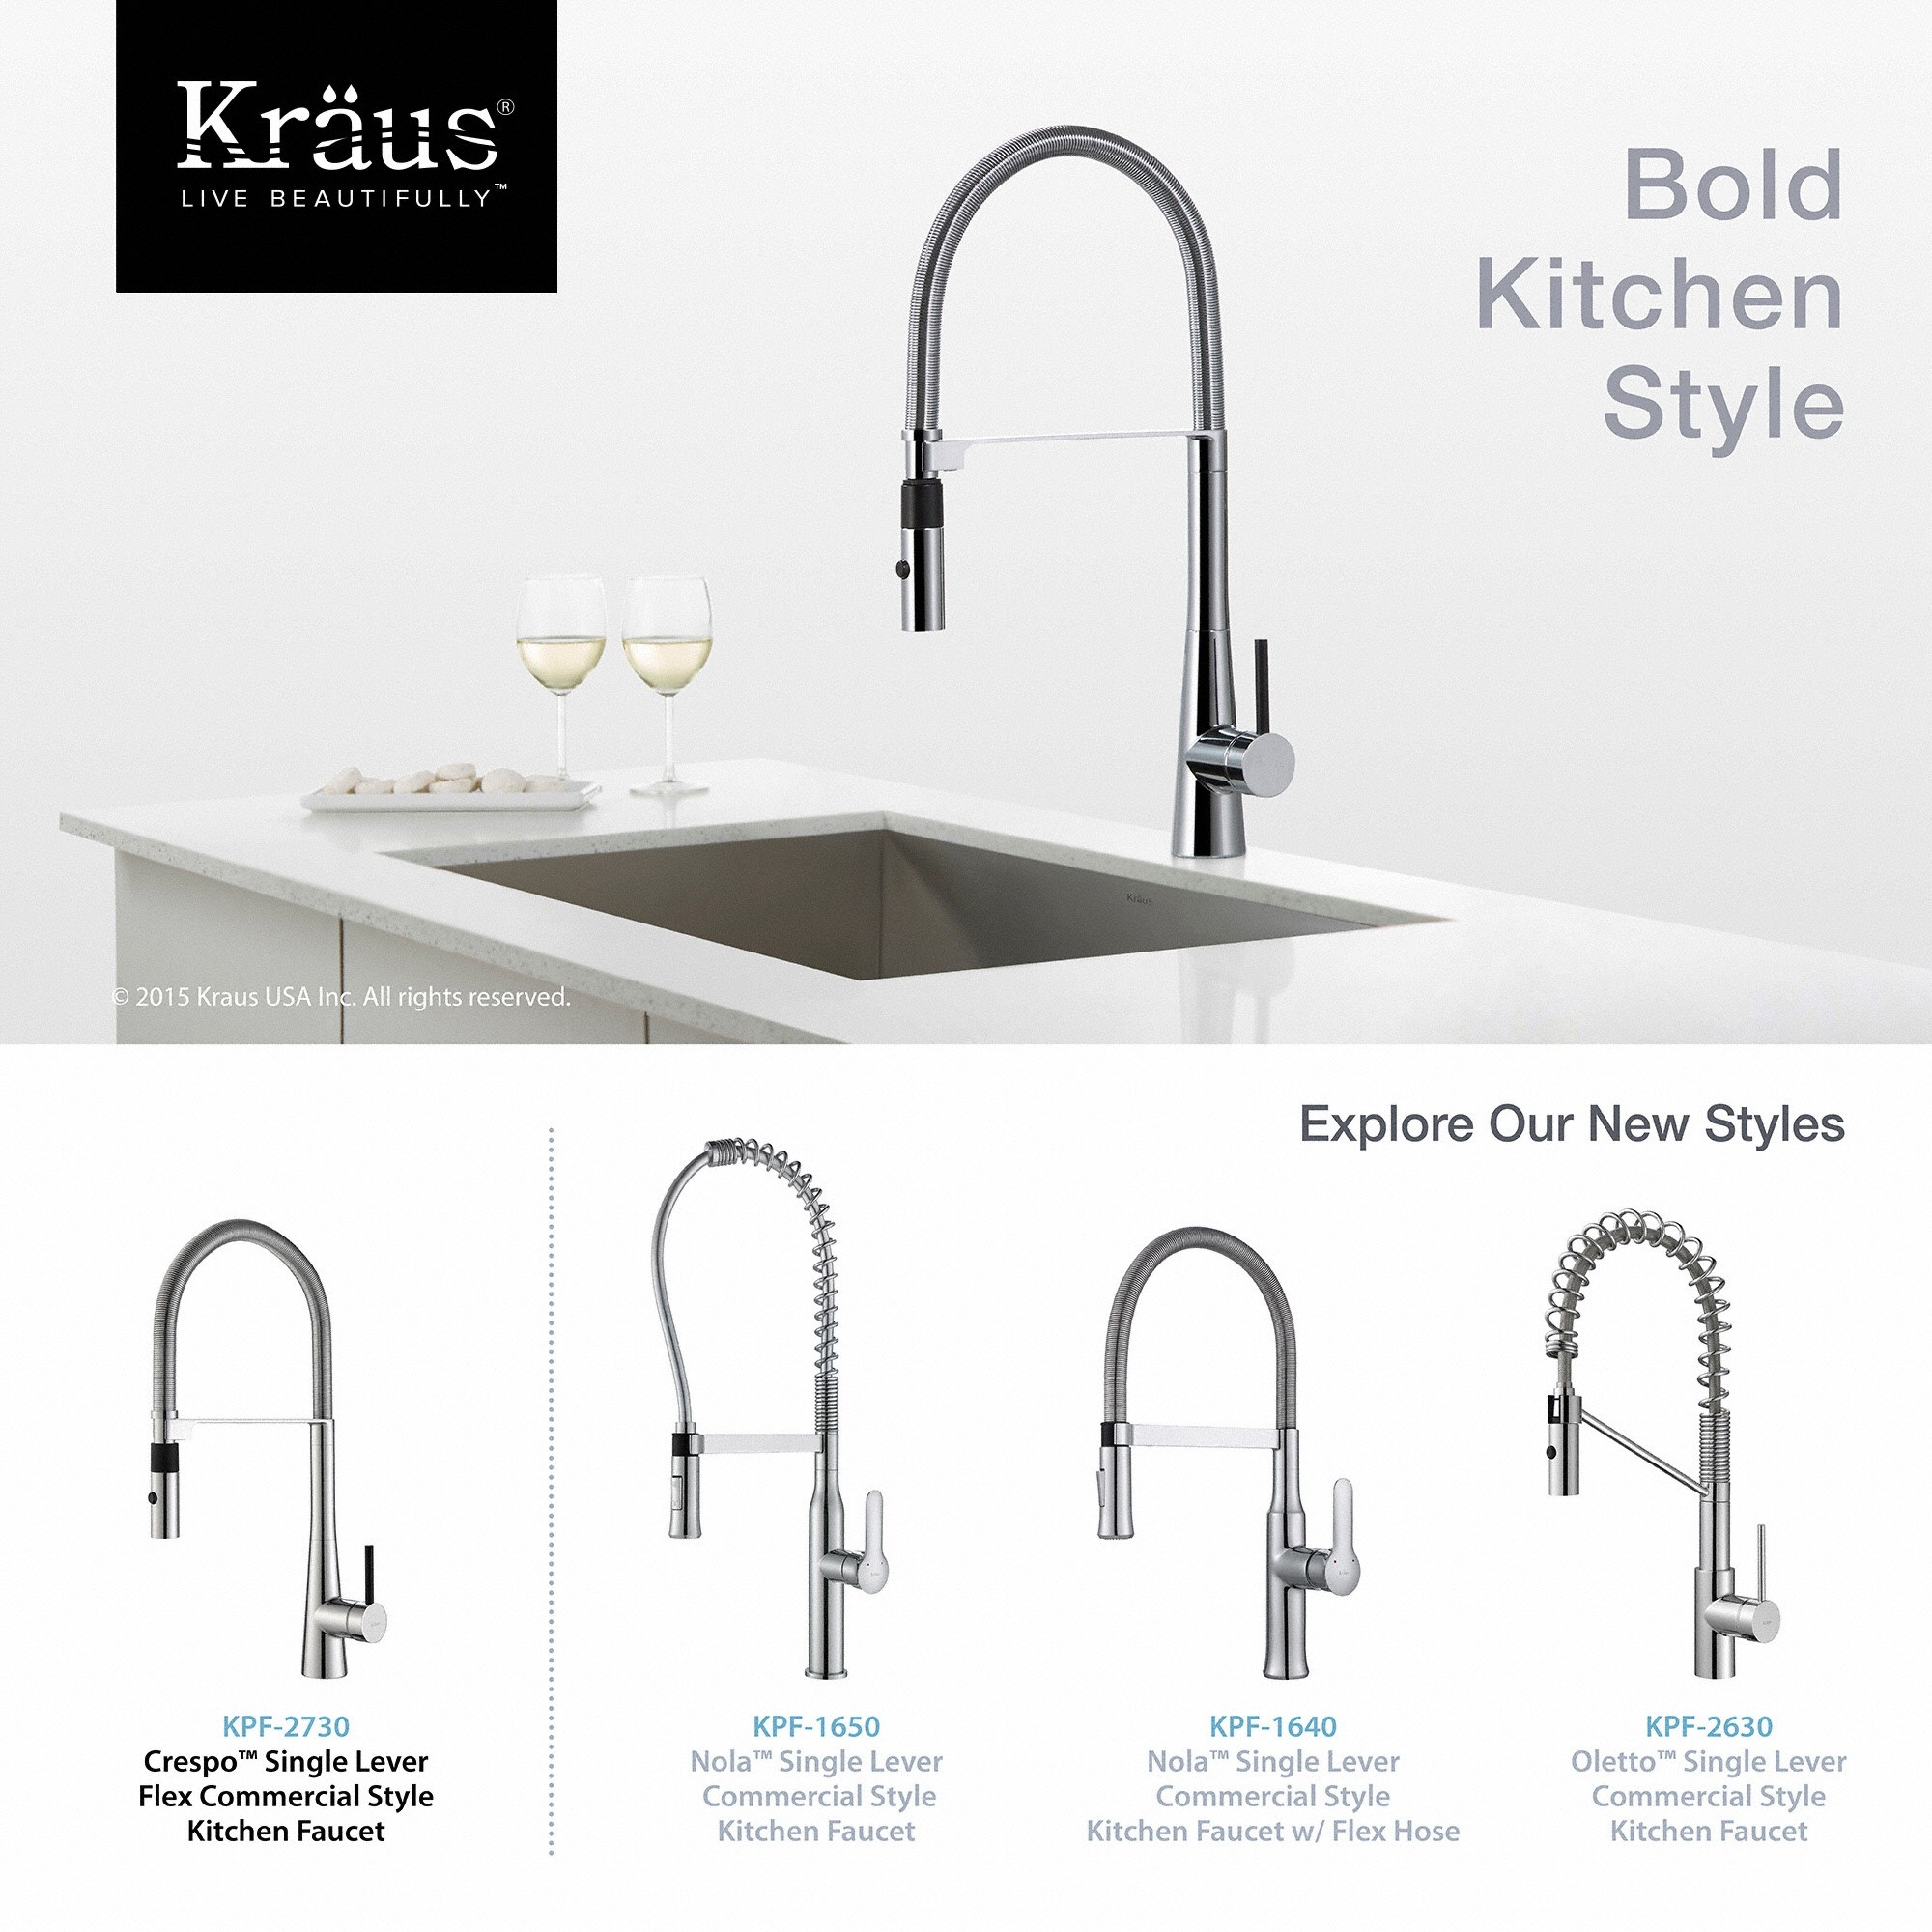 Ideas, styles of kitchen faucets styles of kitchen faucets kitchen faucet kraususa 2000 x 2000  .